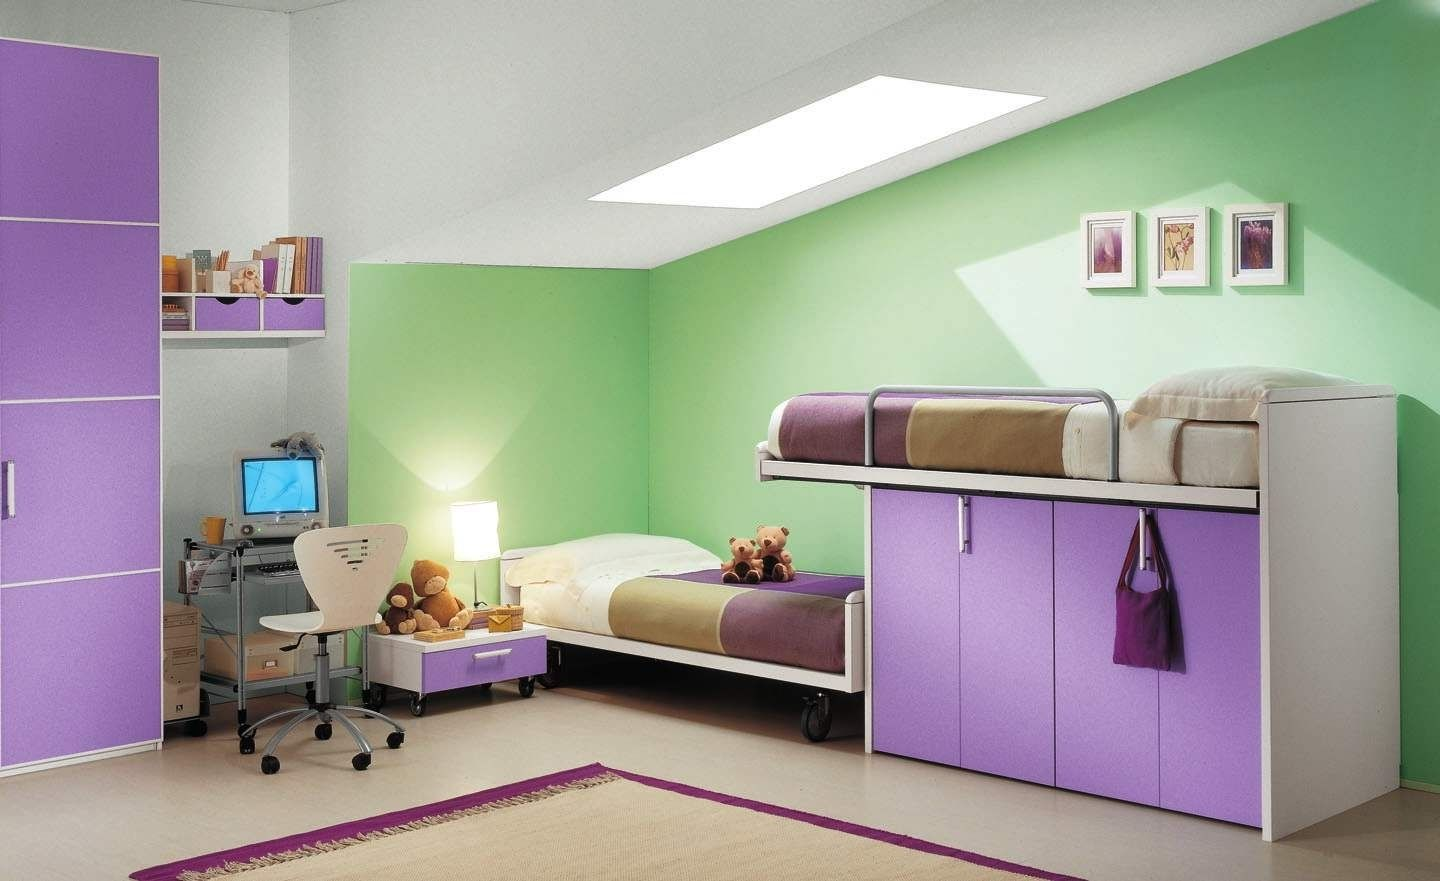 Luxury Childrens Bedroom Furniture Kids Room Kids Bedroom Themes Purple Luxury Kids Room Designs With